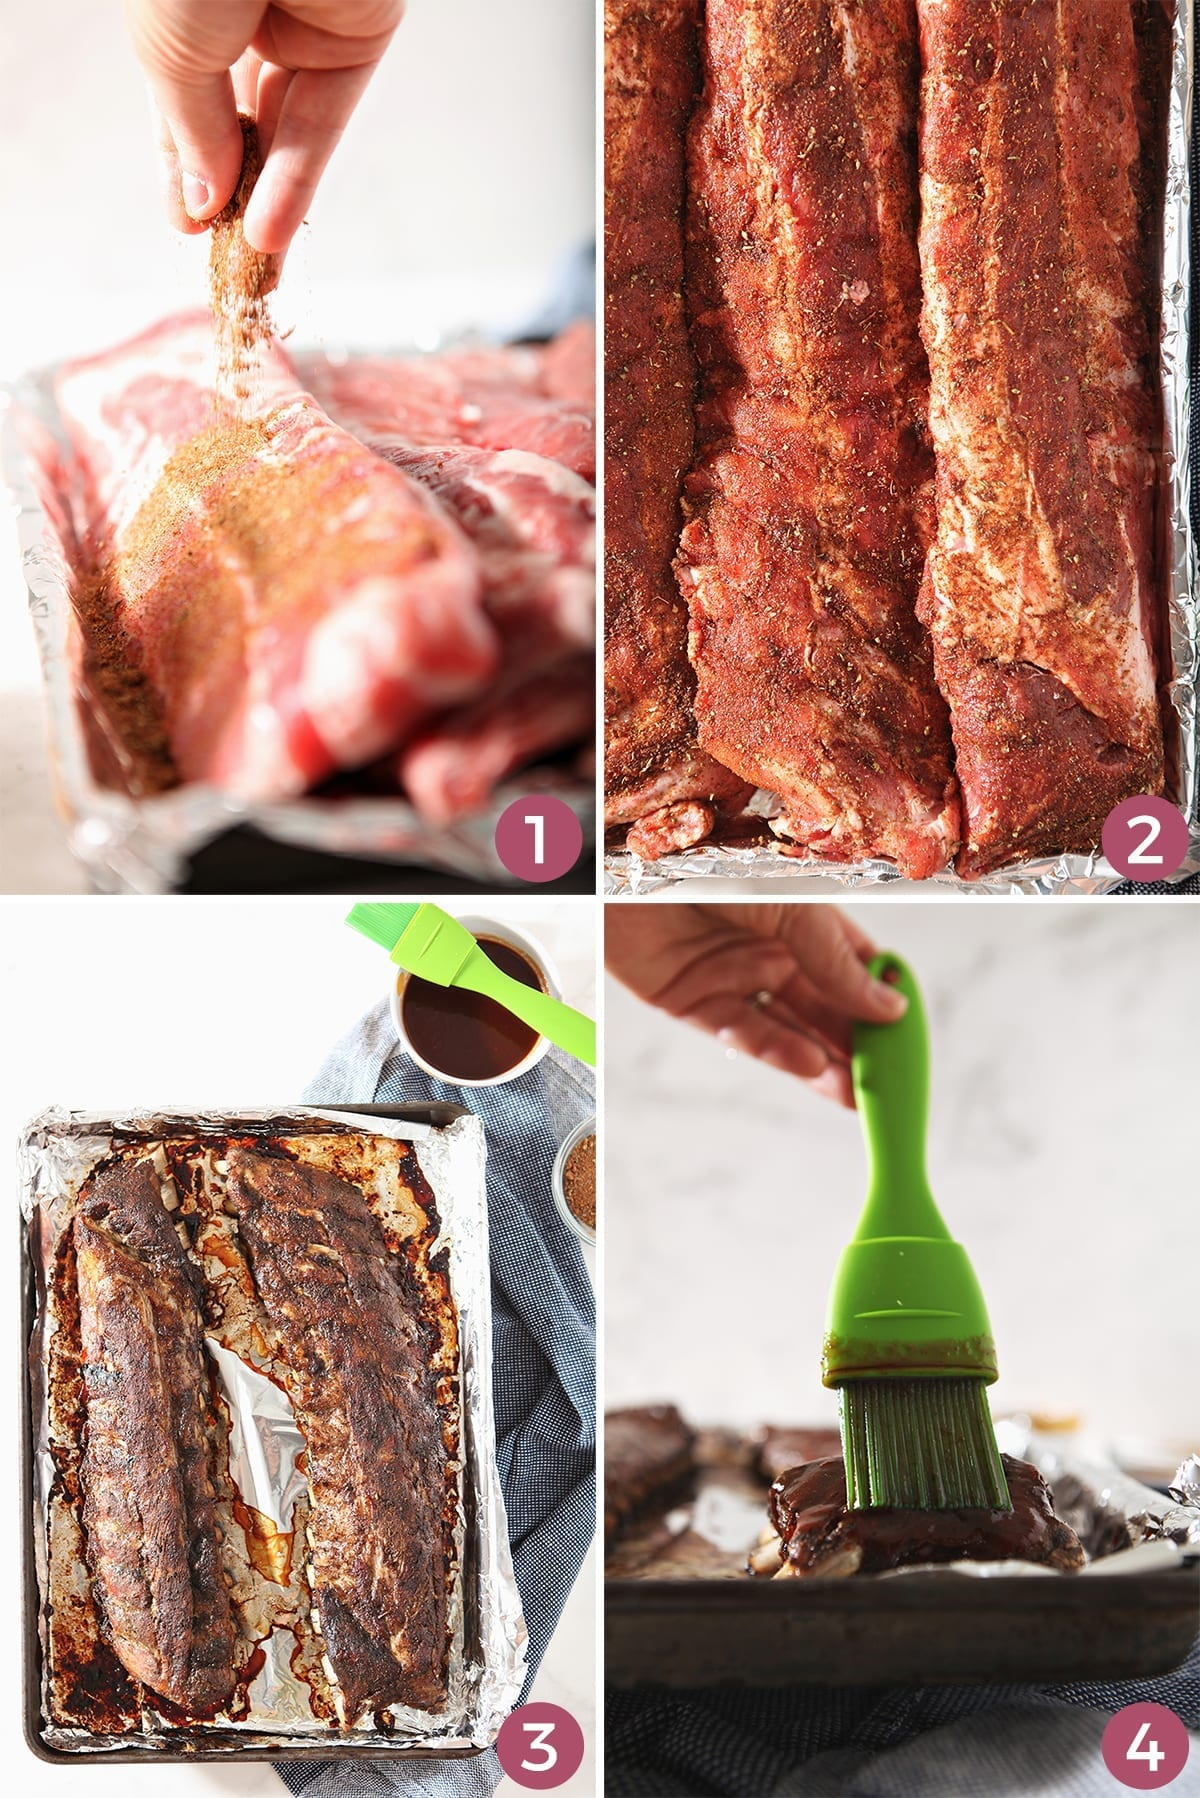 A collage of four images shows how to prepare Memphis ribs before and during their cooking process